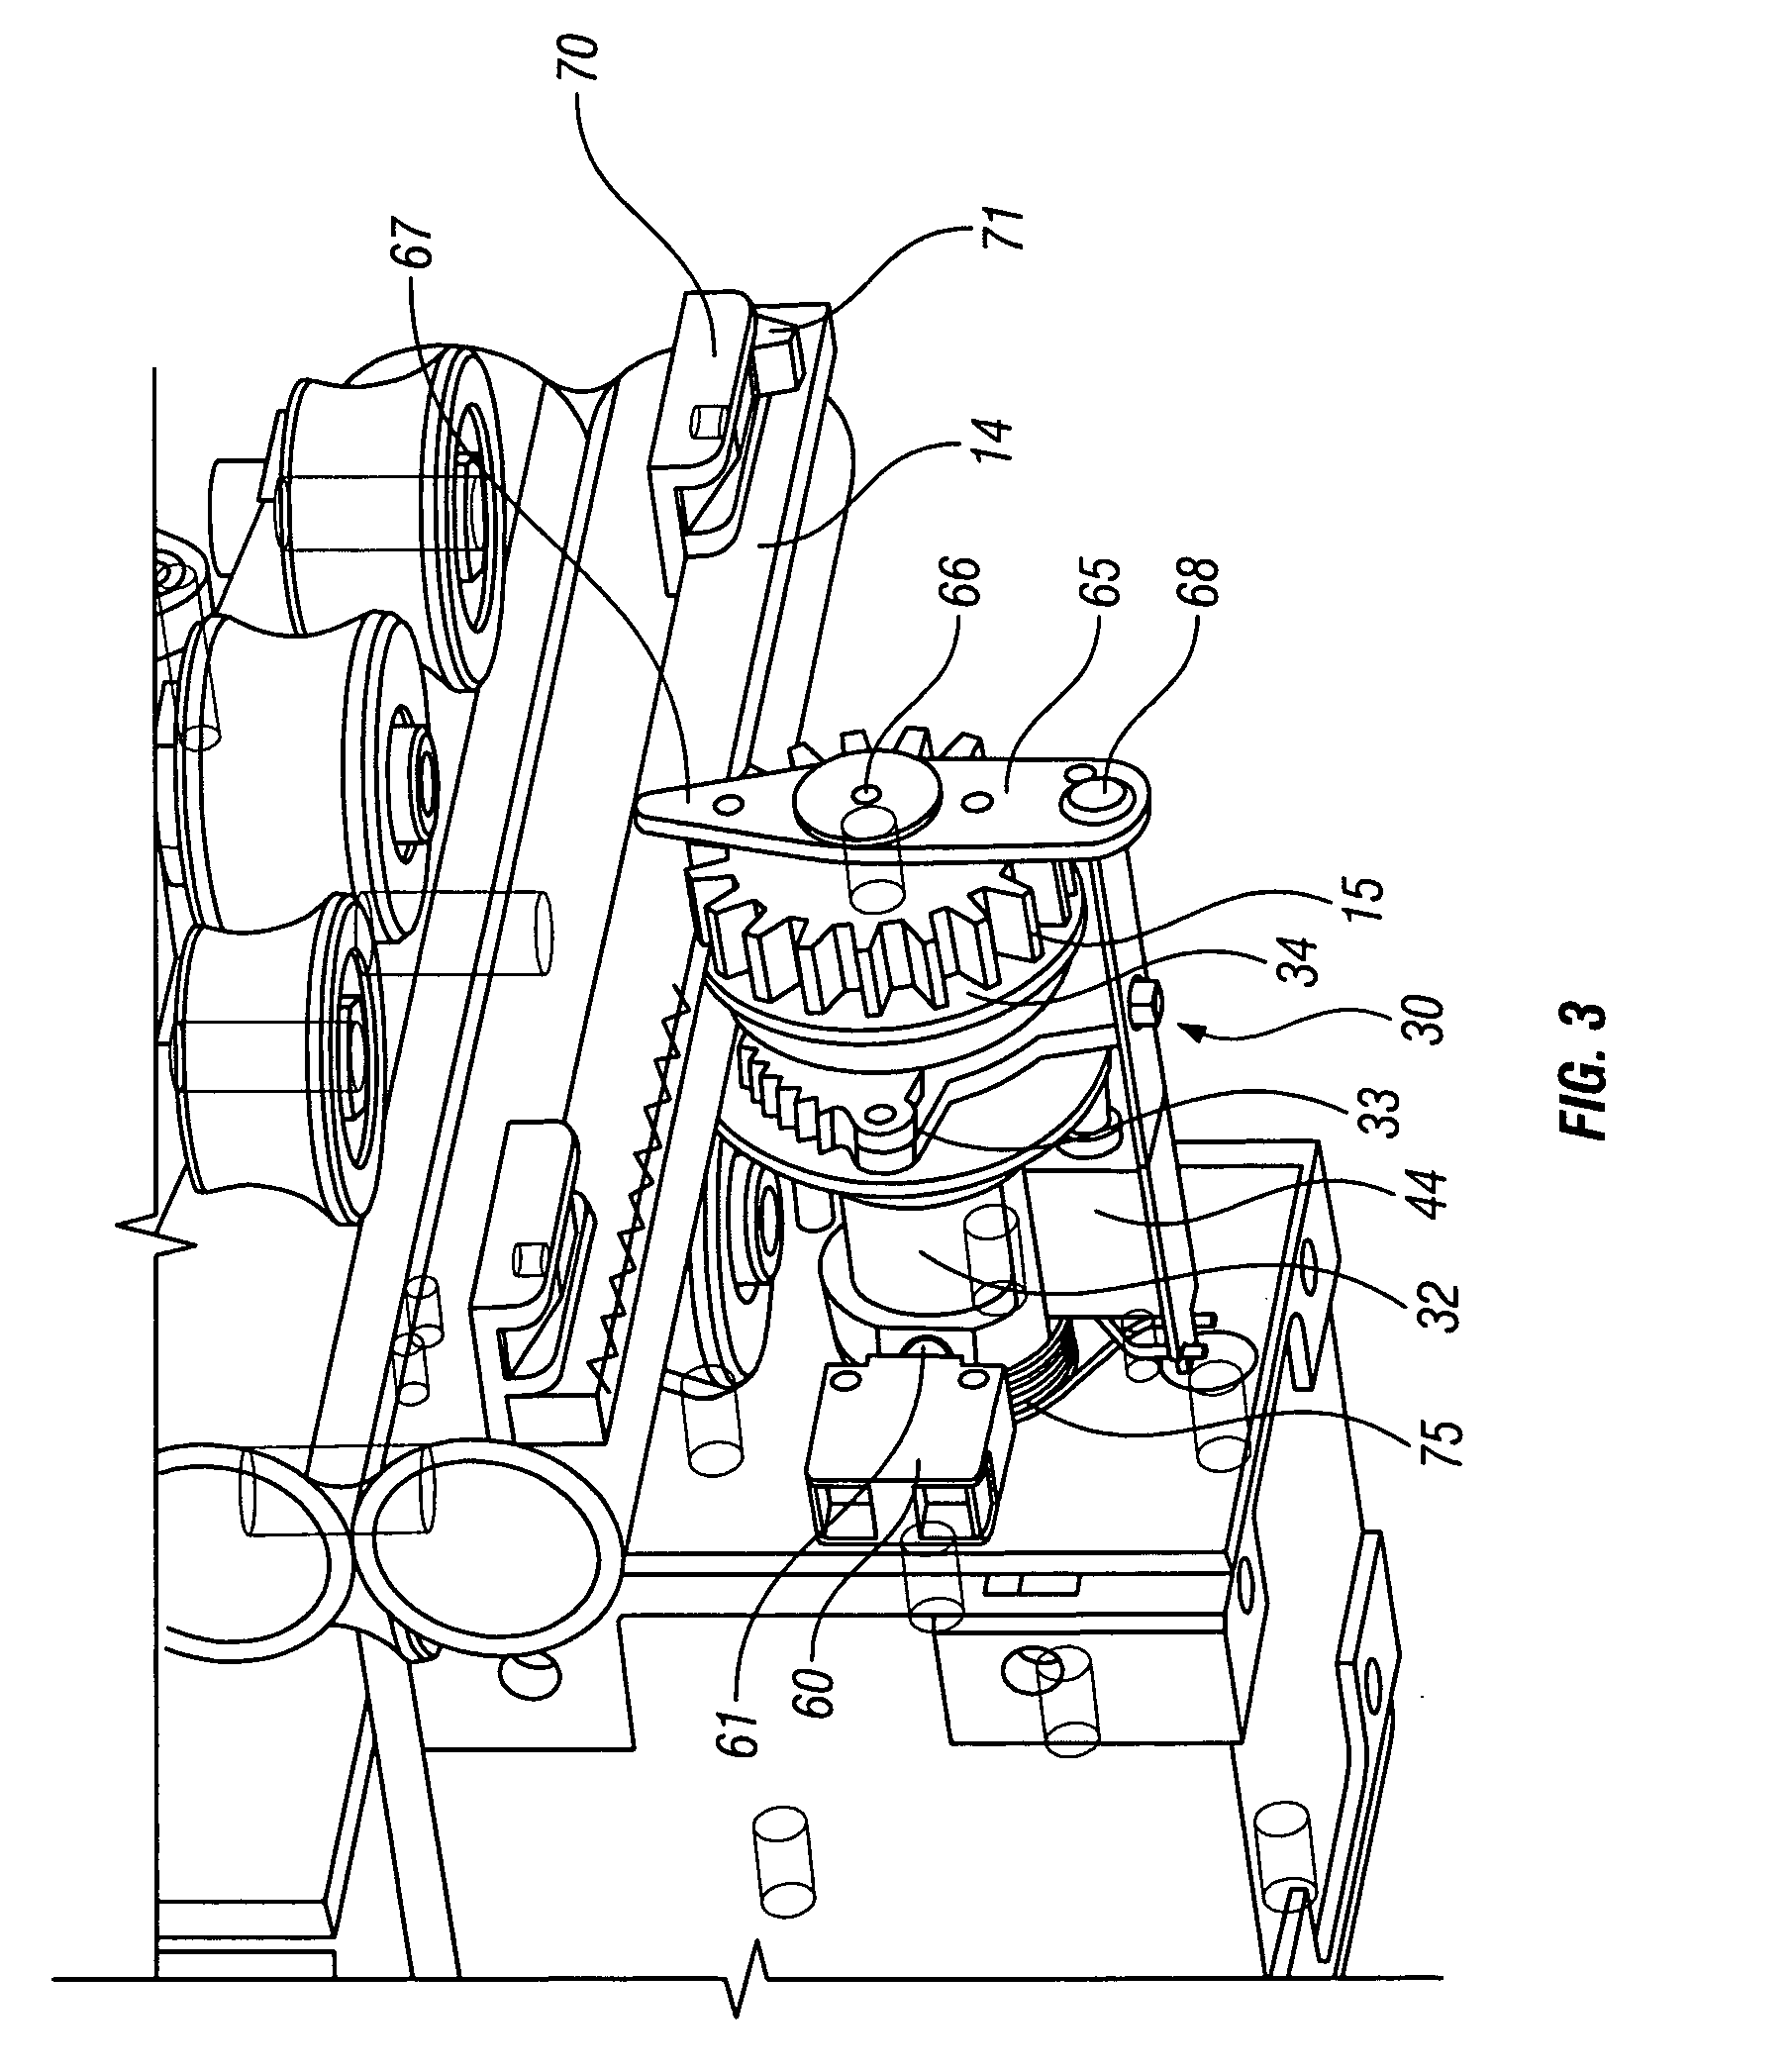 Stair Lift Diagram Wiring Master Blogs Circuit Stairs Patent Us20100274409 Stairlifts Google Patentsuche Rh Ch Levant